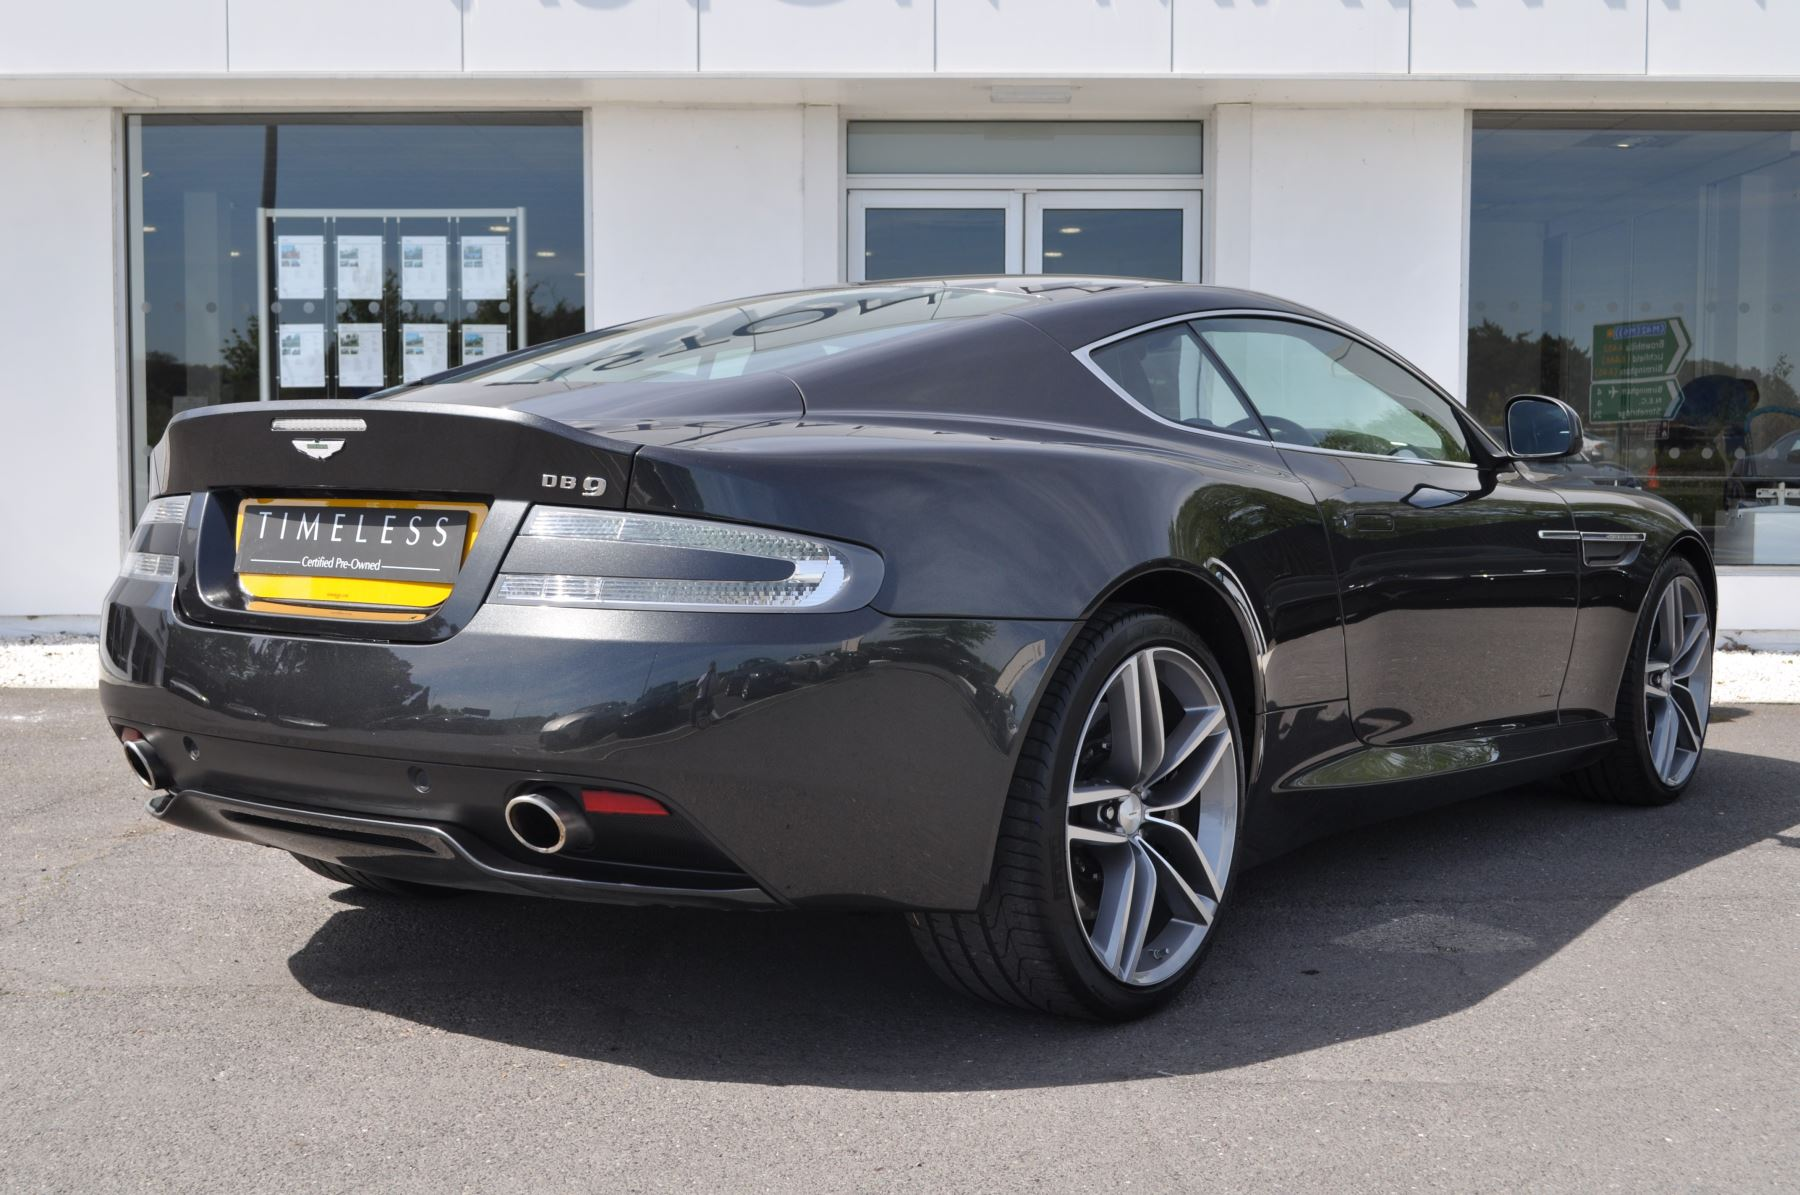 Aston Martin DB9 V12 2dr Touchtronic image 9